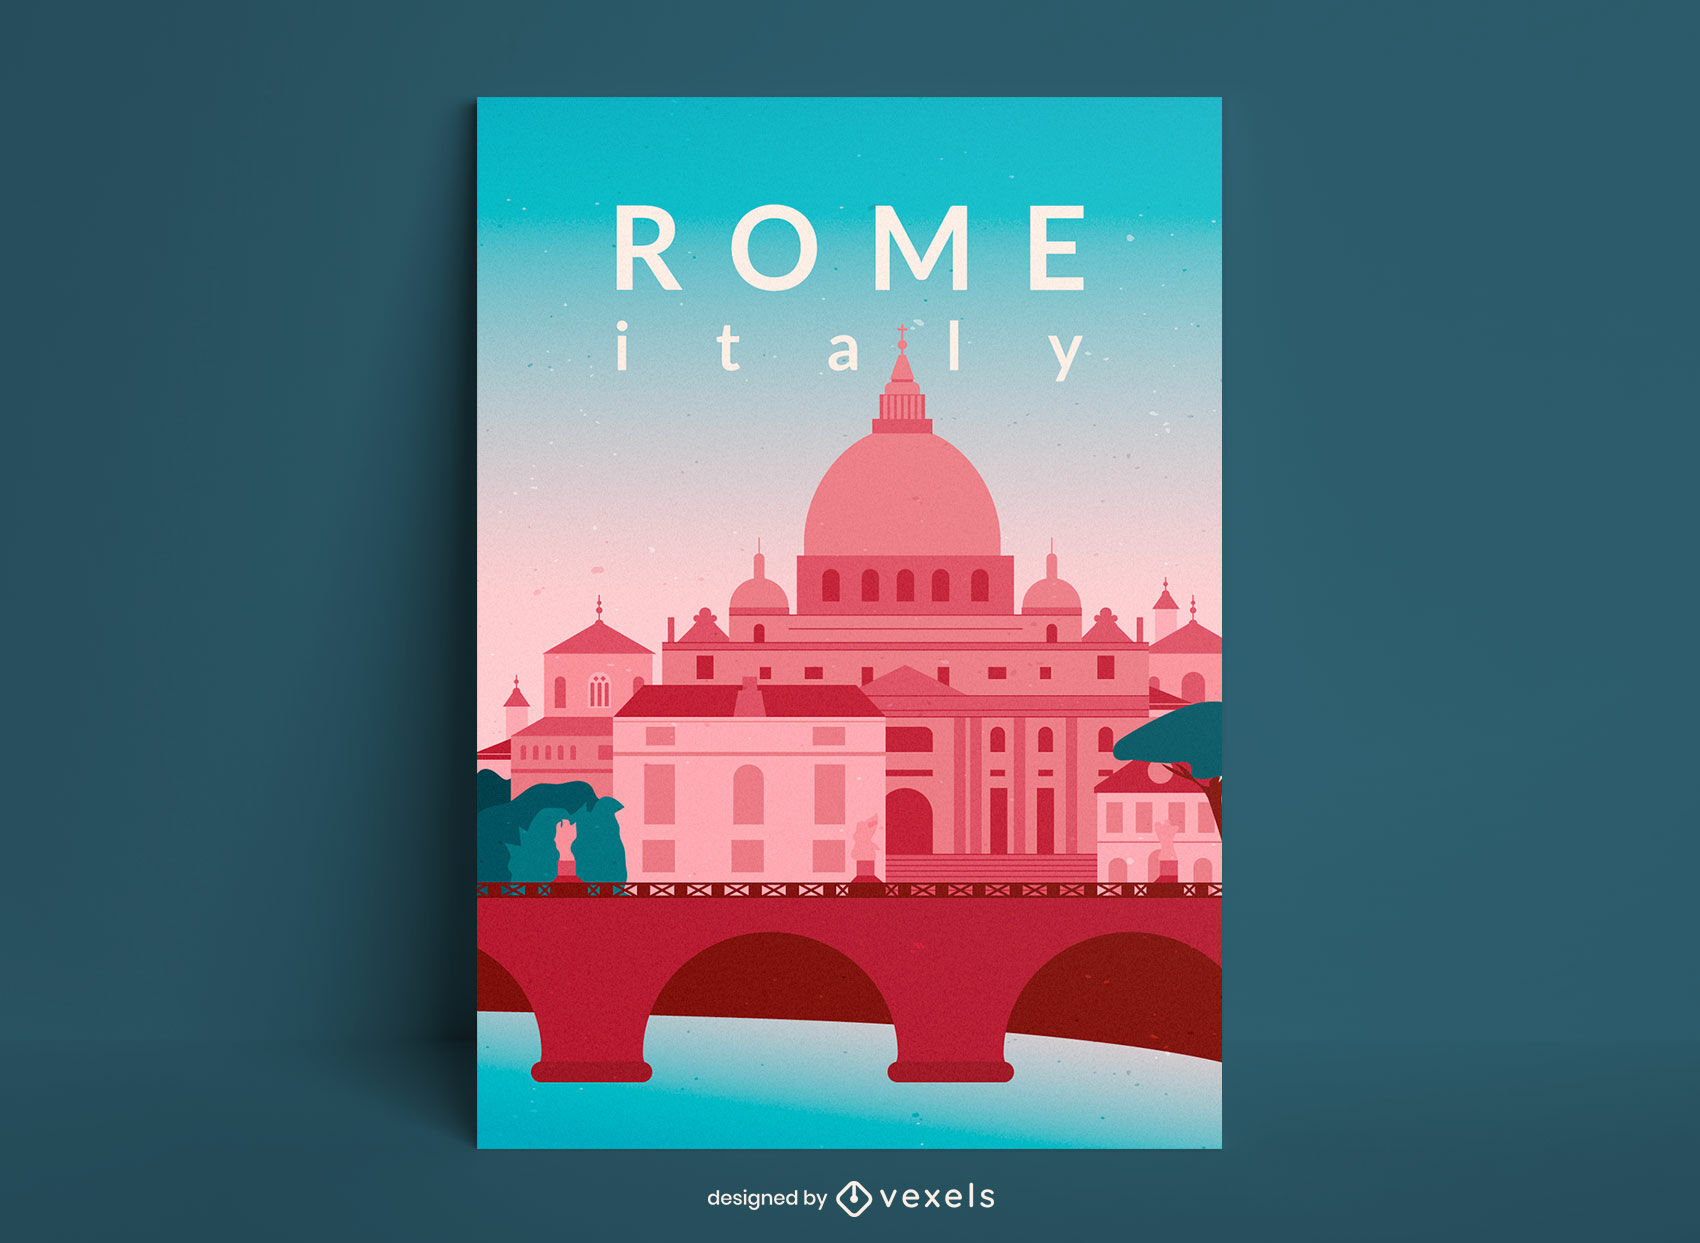 Rome italy buildings travel poster design